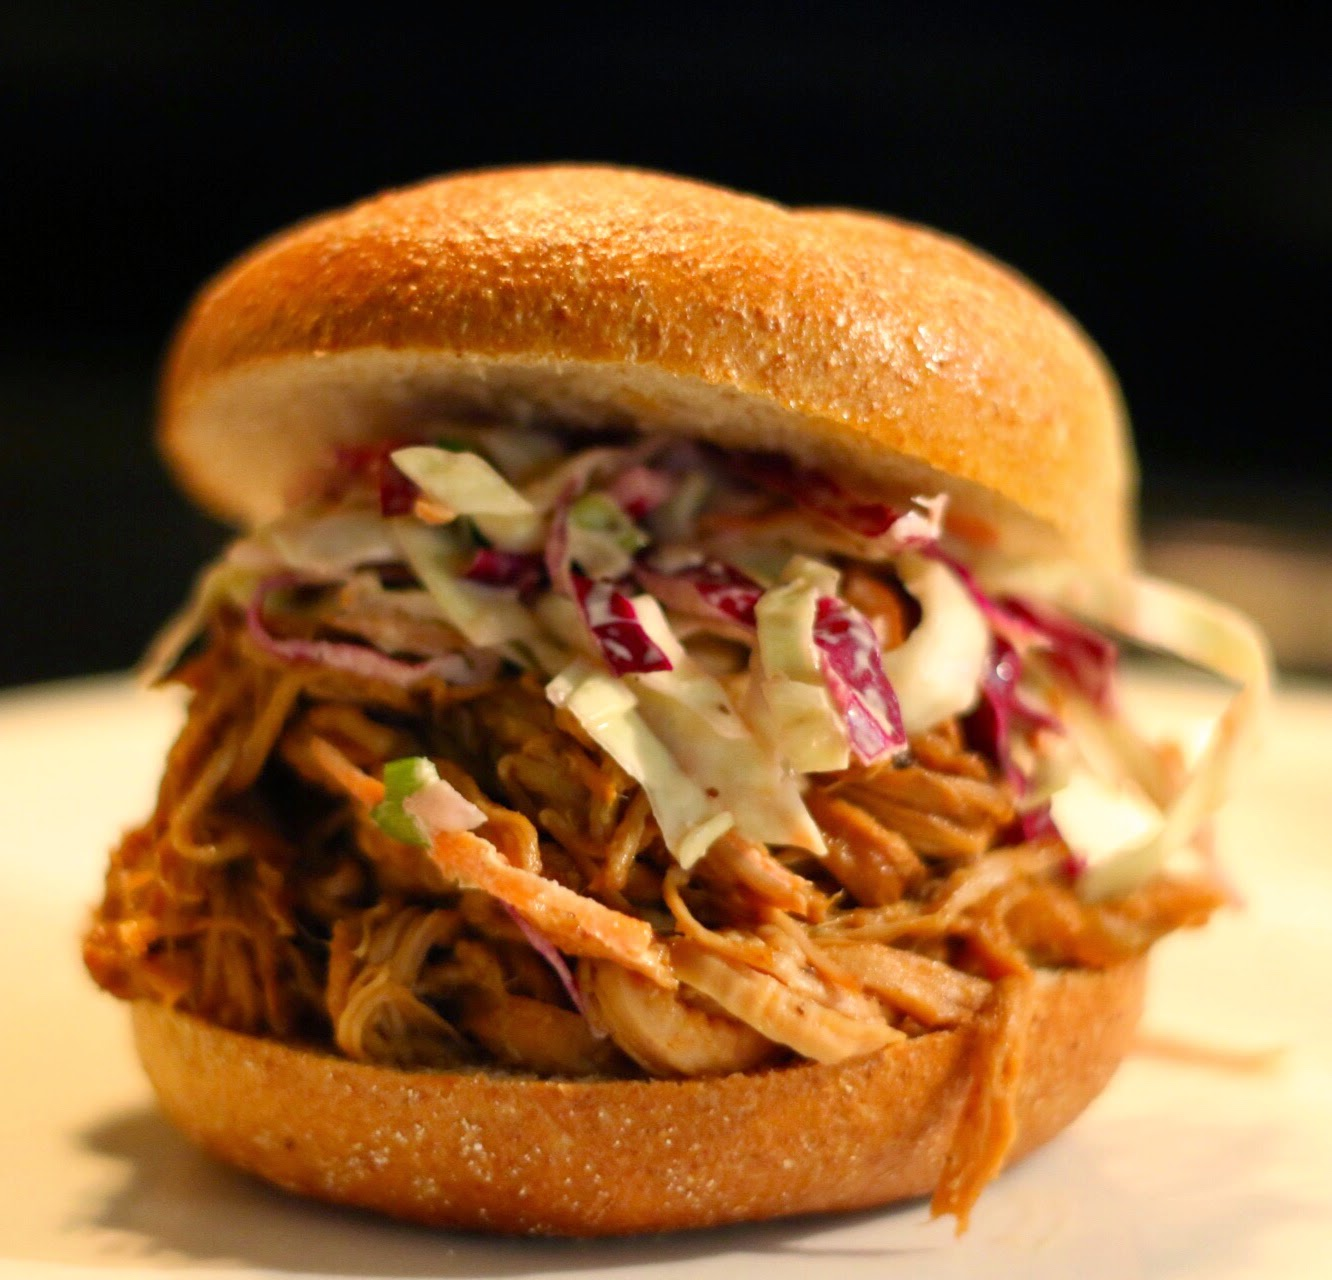 Make It Happen: Pulled Pork Sandwich with Coleslaw